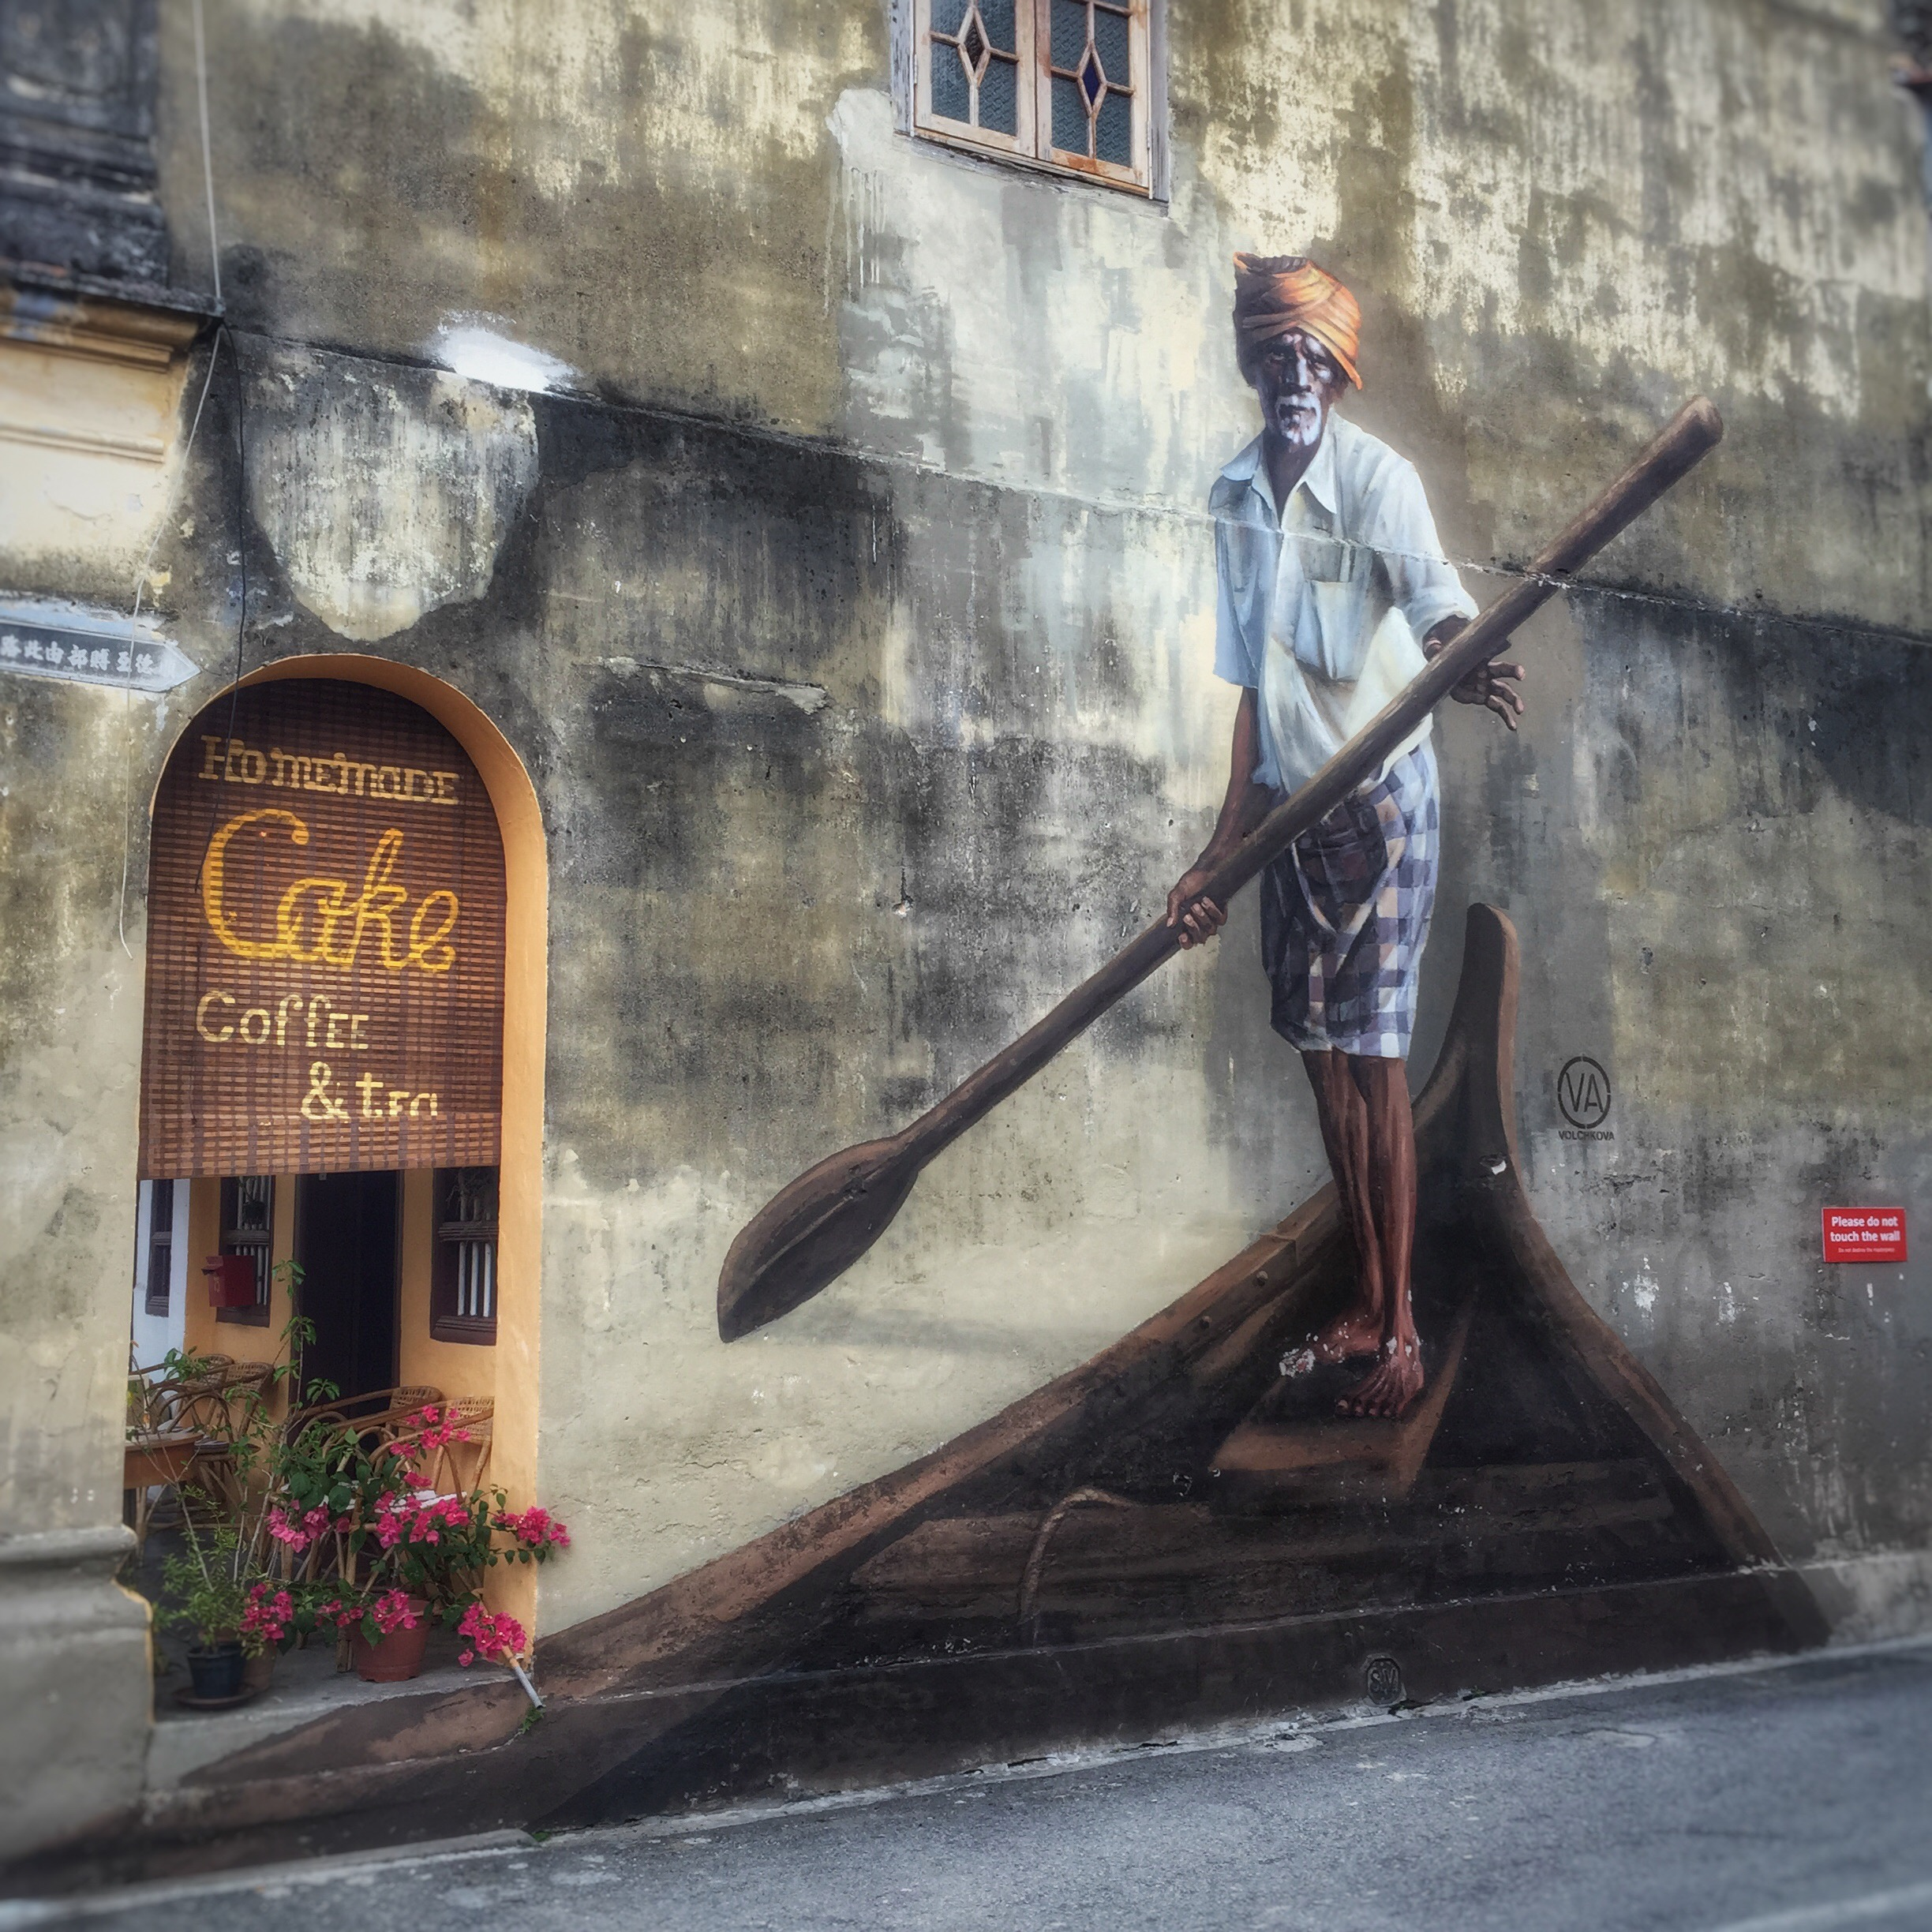 pengang street art -  man with boat